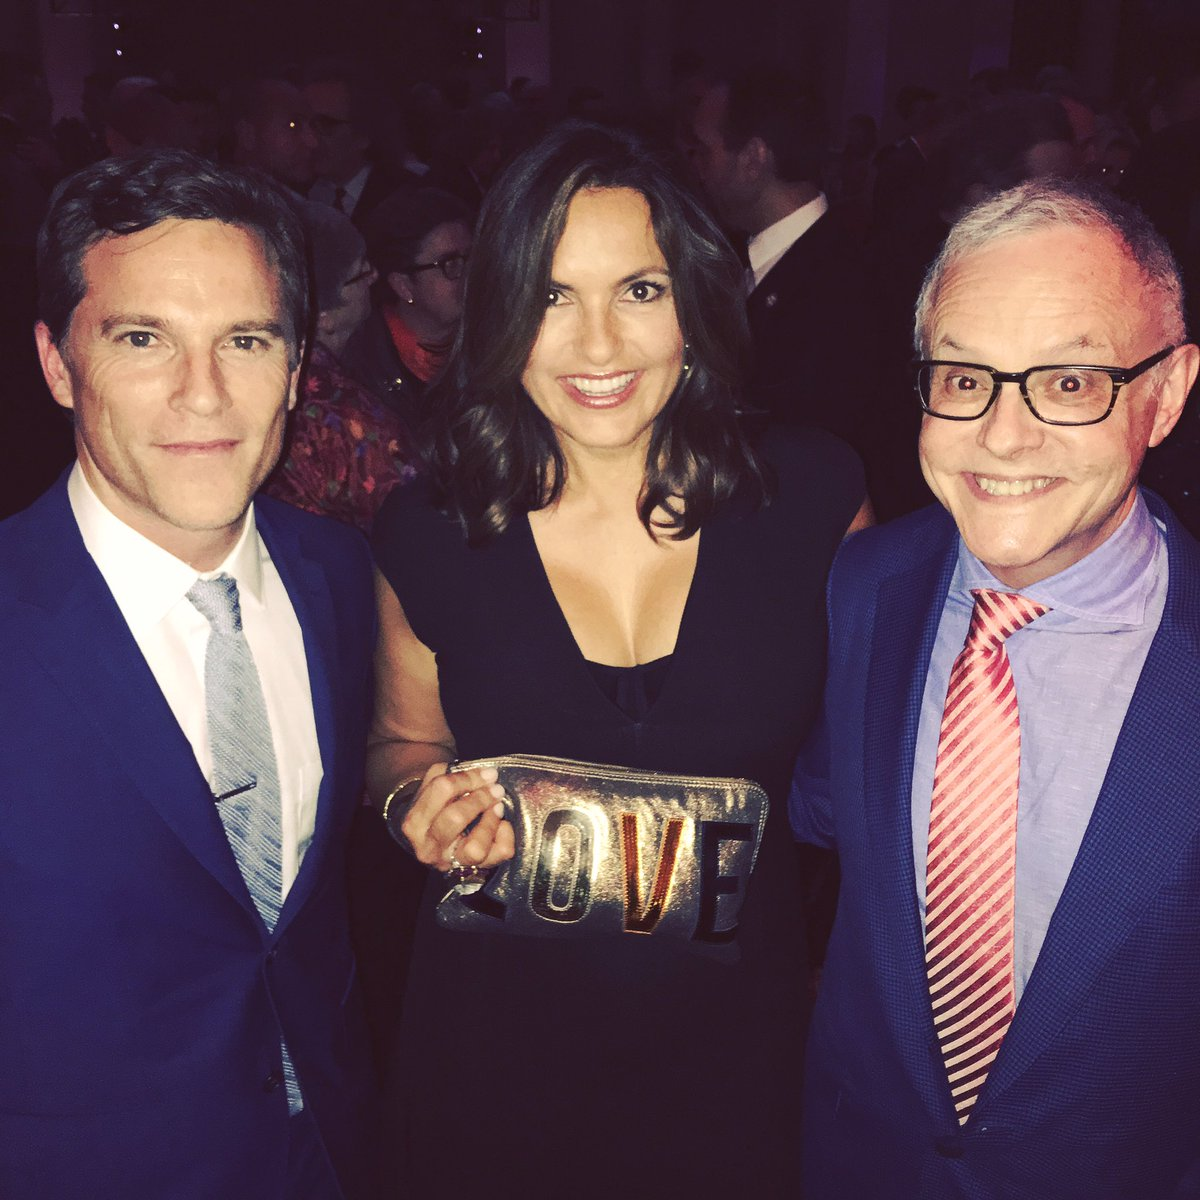 Reunited with the man who brought us together @therealmariskahargitay @nealbaer . Out supporting @hillaryclinton https://t.co/kuaEZlVJFy